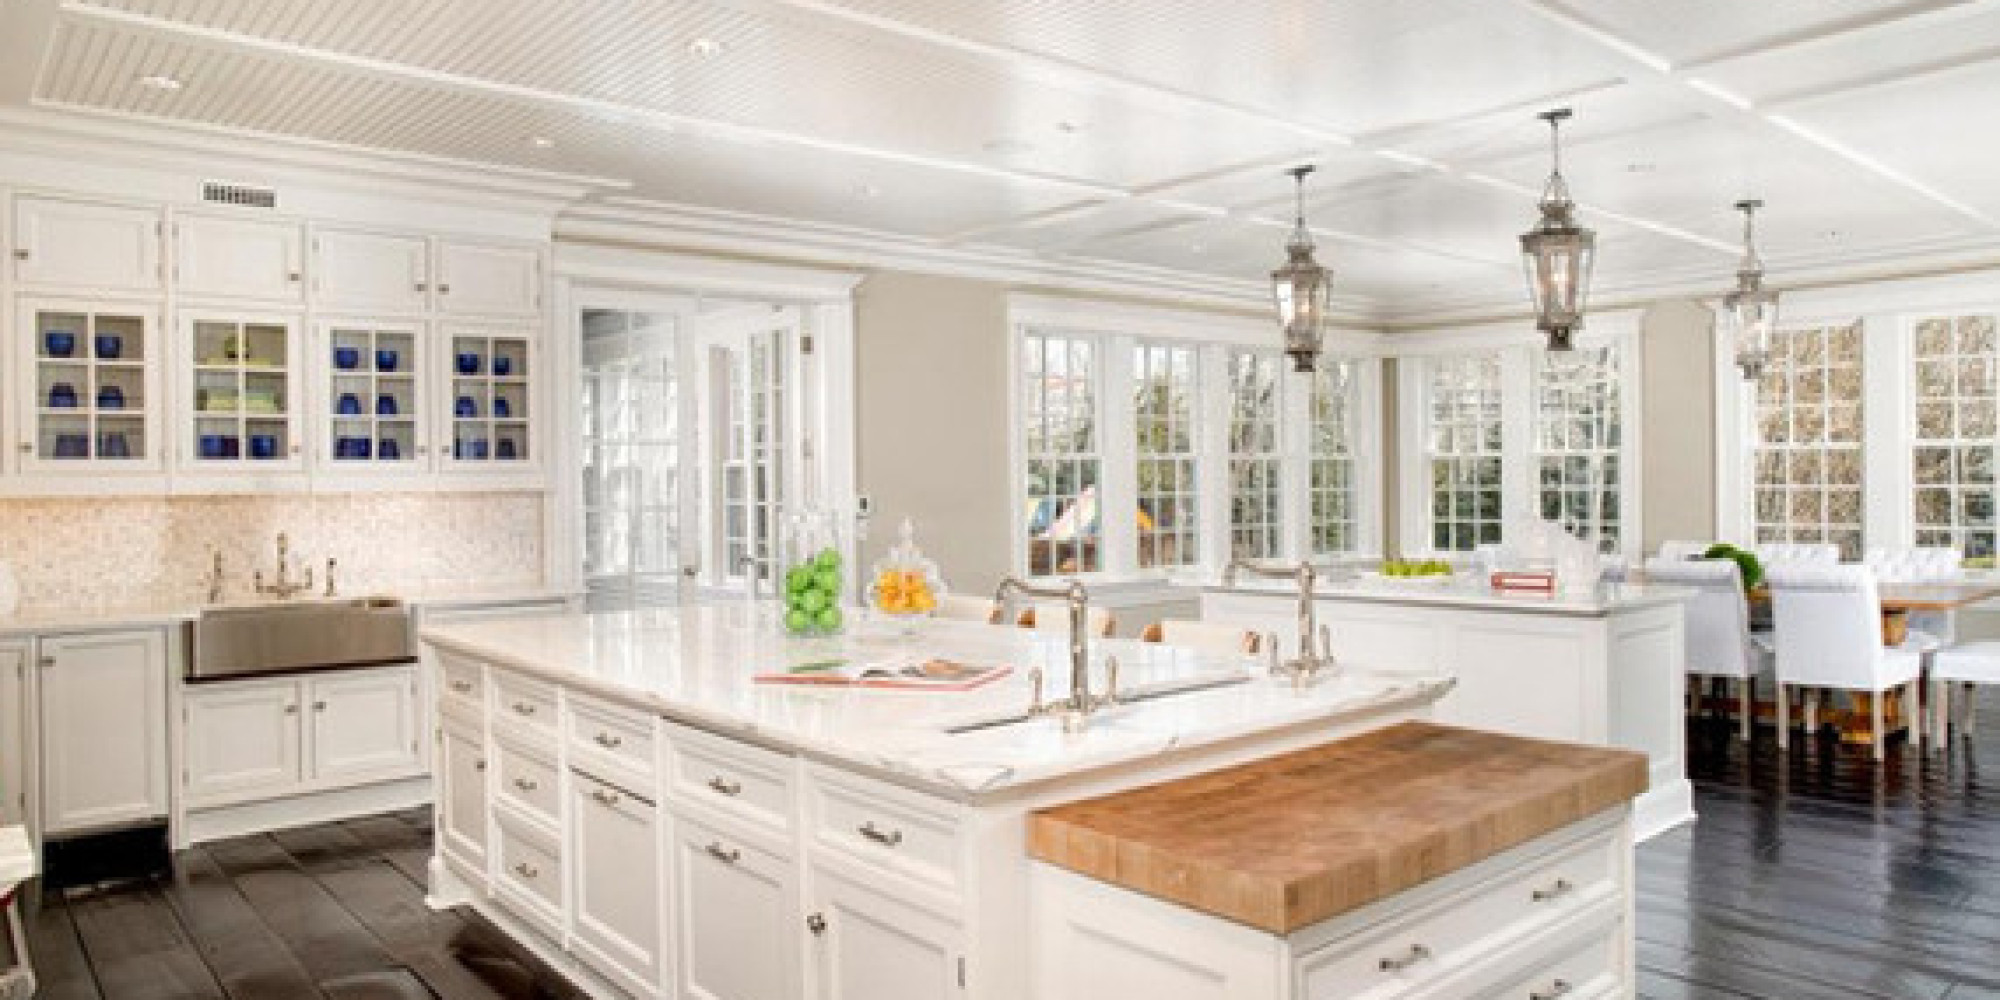 Please Pause To Admire These 21 Stunning Kitchens | HuffPost